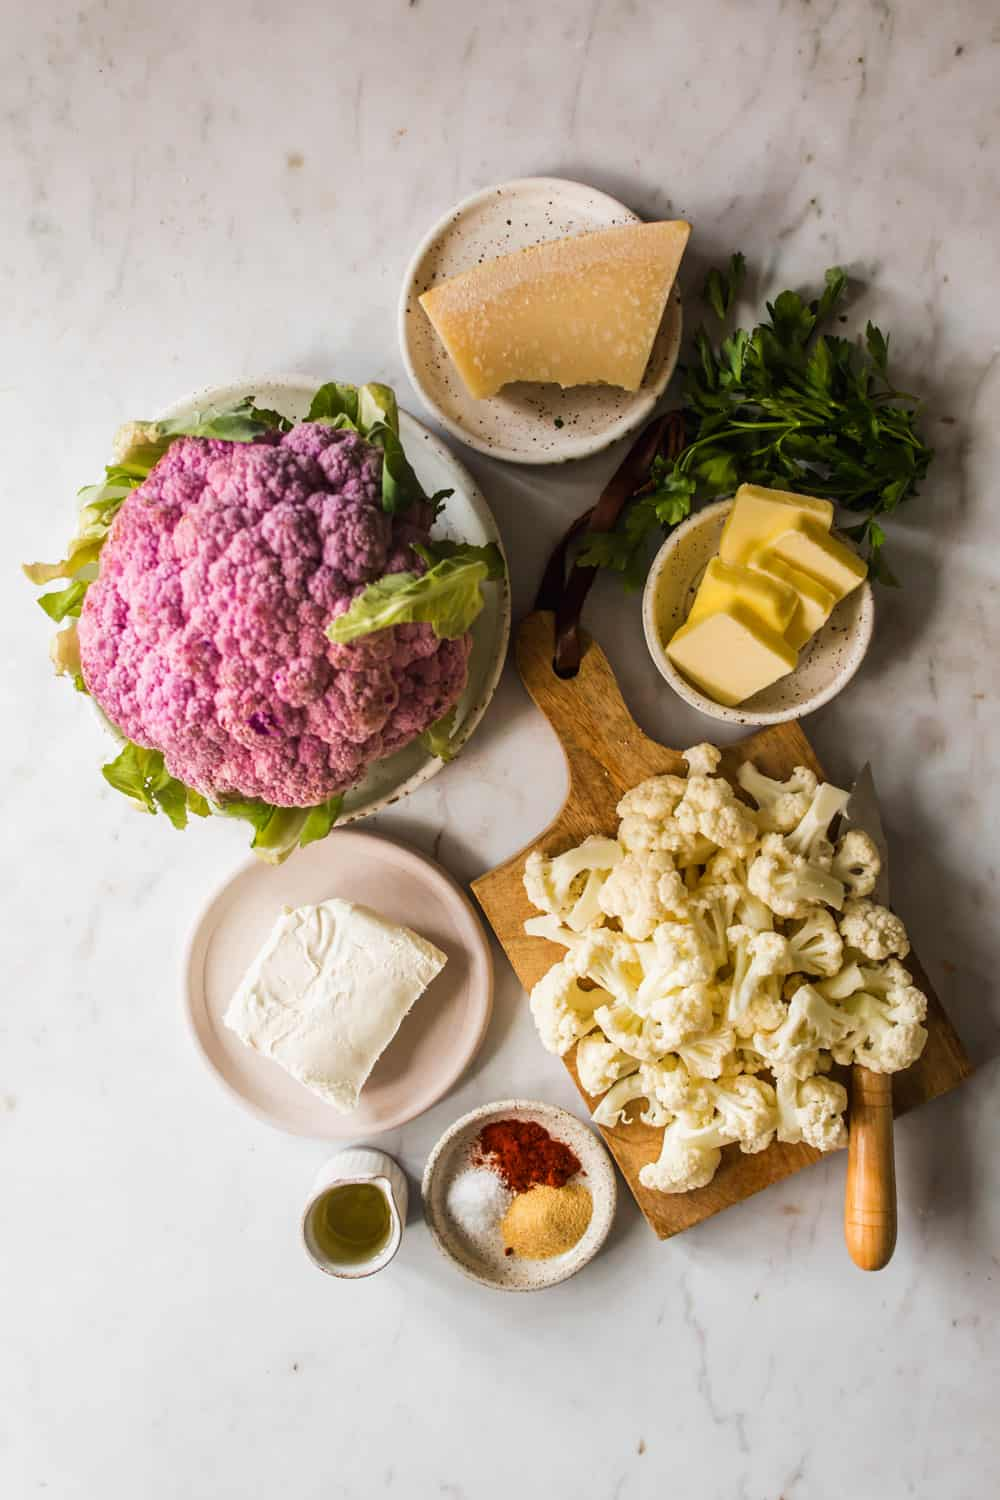 Head of purple cauliflower next to white cauliflower florets on a wood board. Small dishes with cheese and butter on the side.